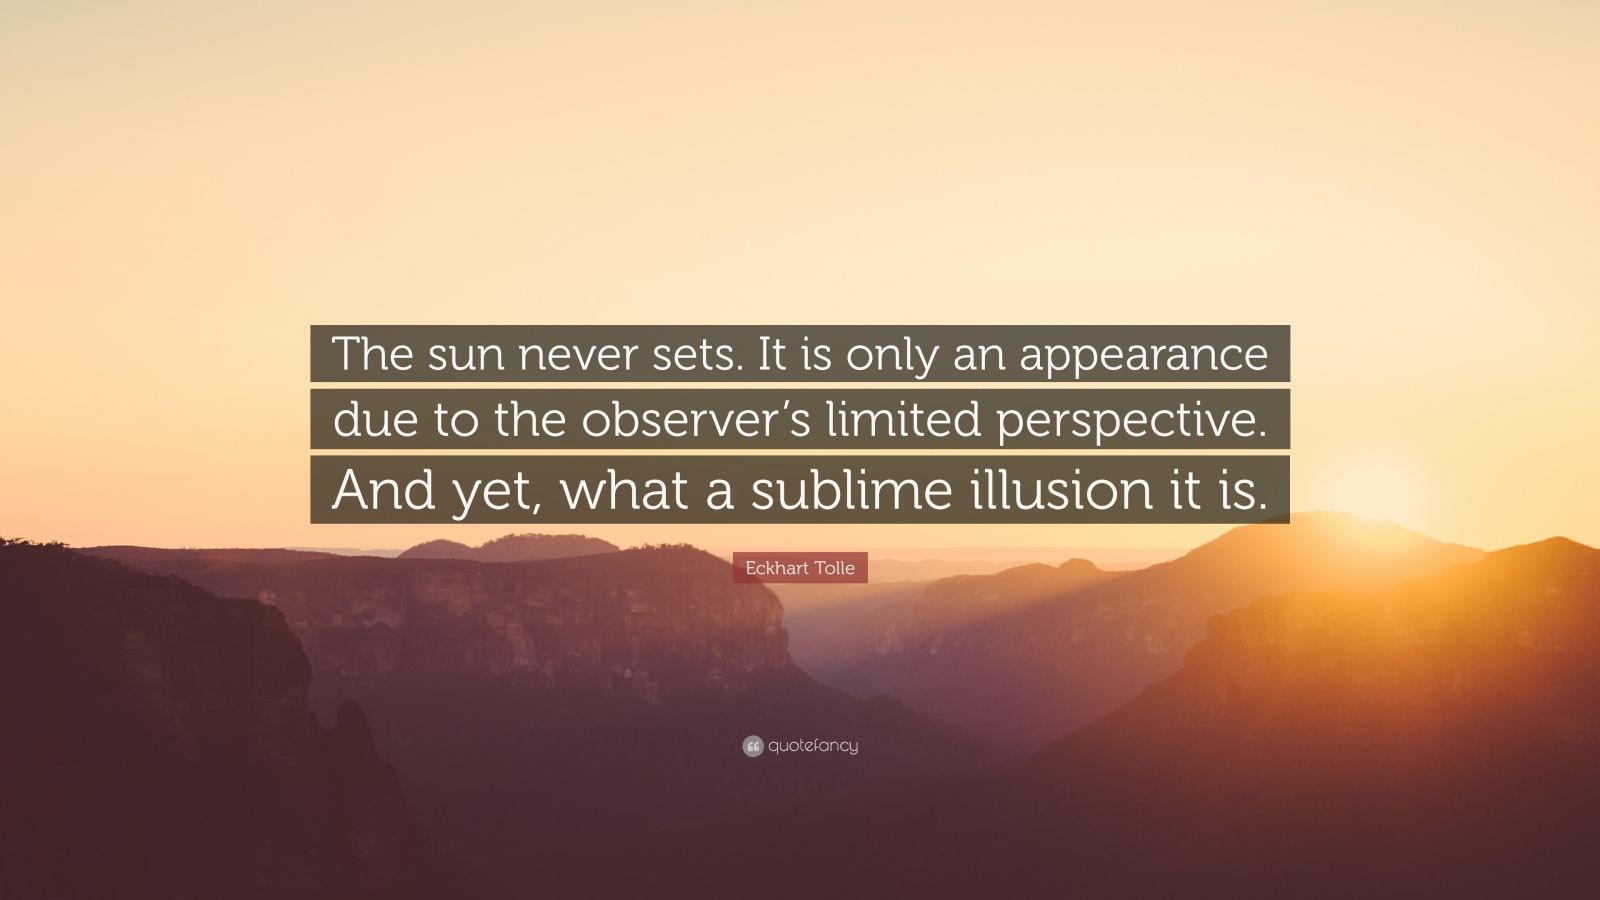 """Eckhart Tolle Quote: """"The sun never sets. It is only an appearance due to the observer's limited perspective. And yet, what a sublime illusion it is."""""""